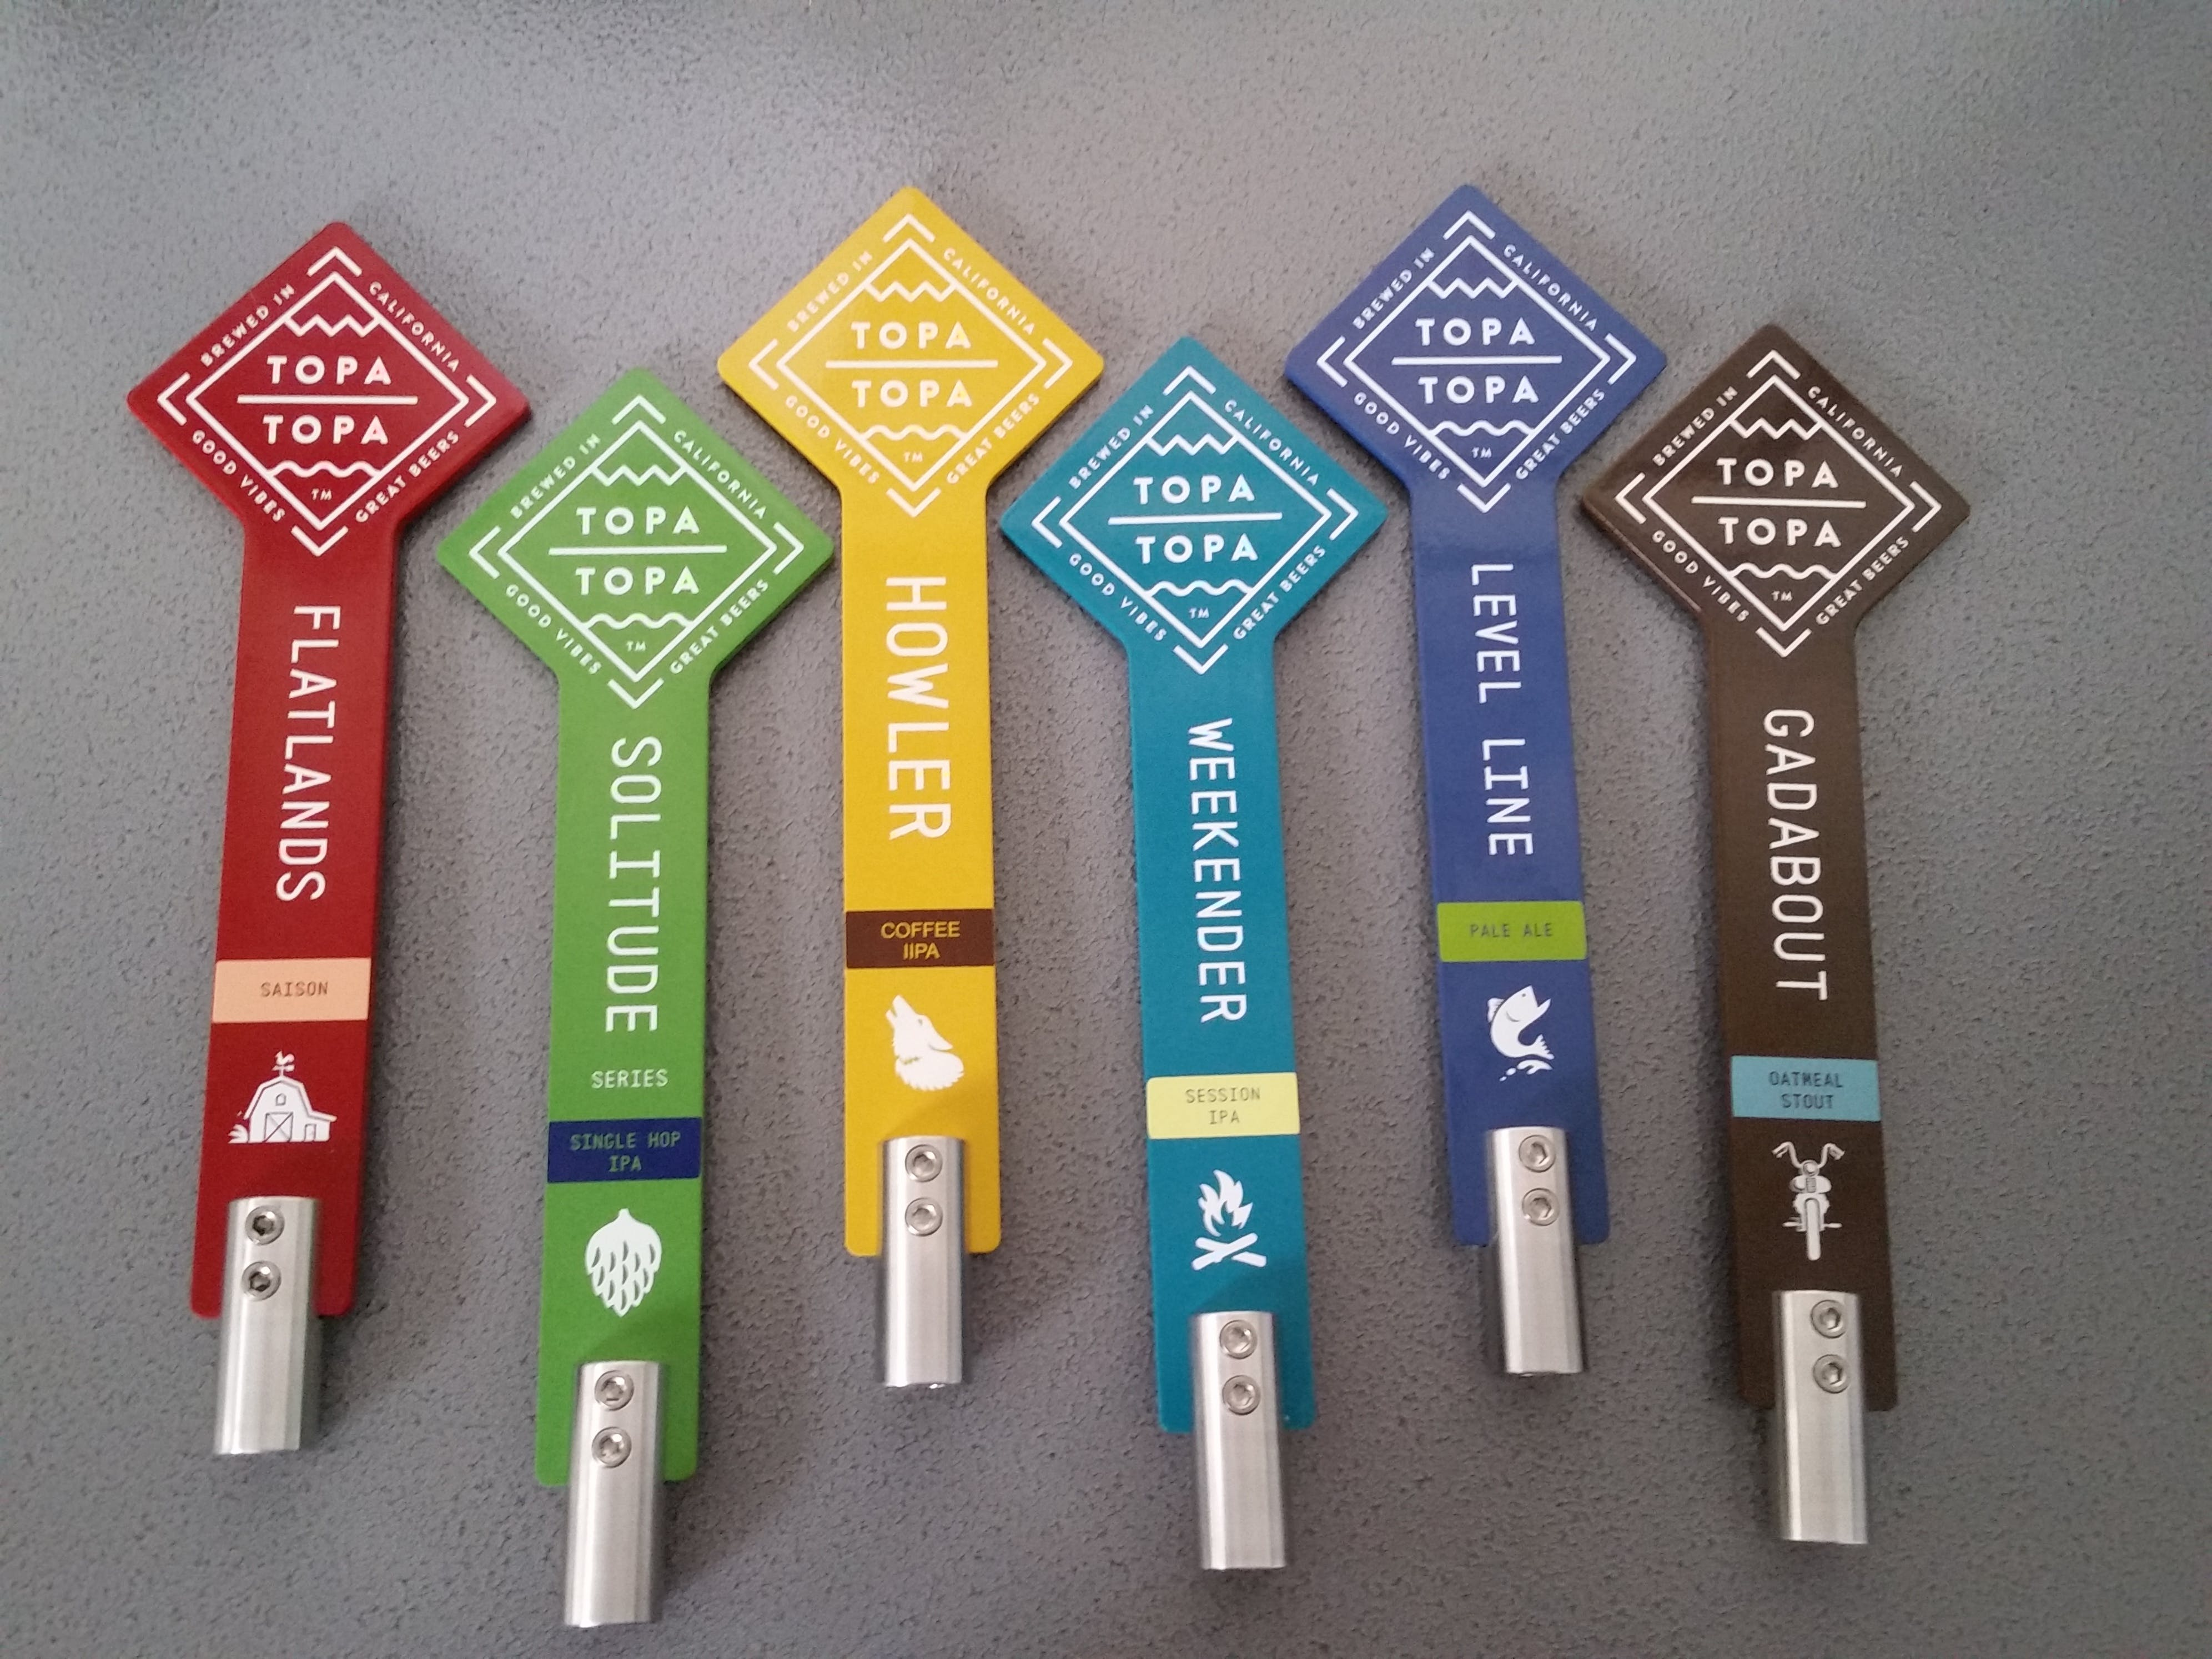 Tap Handles for Topa Topa Brewing Co. Ventura, Ca. - Aluminum Tap Handles - sold by Brewlicious Beer